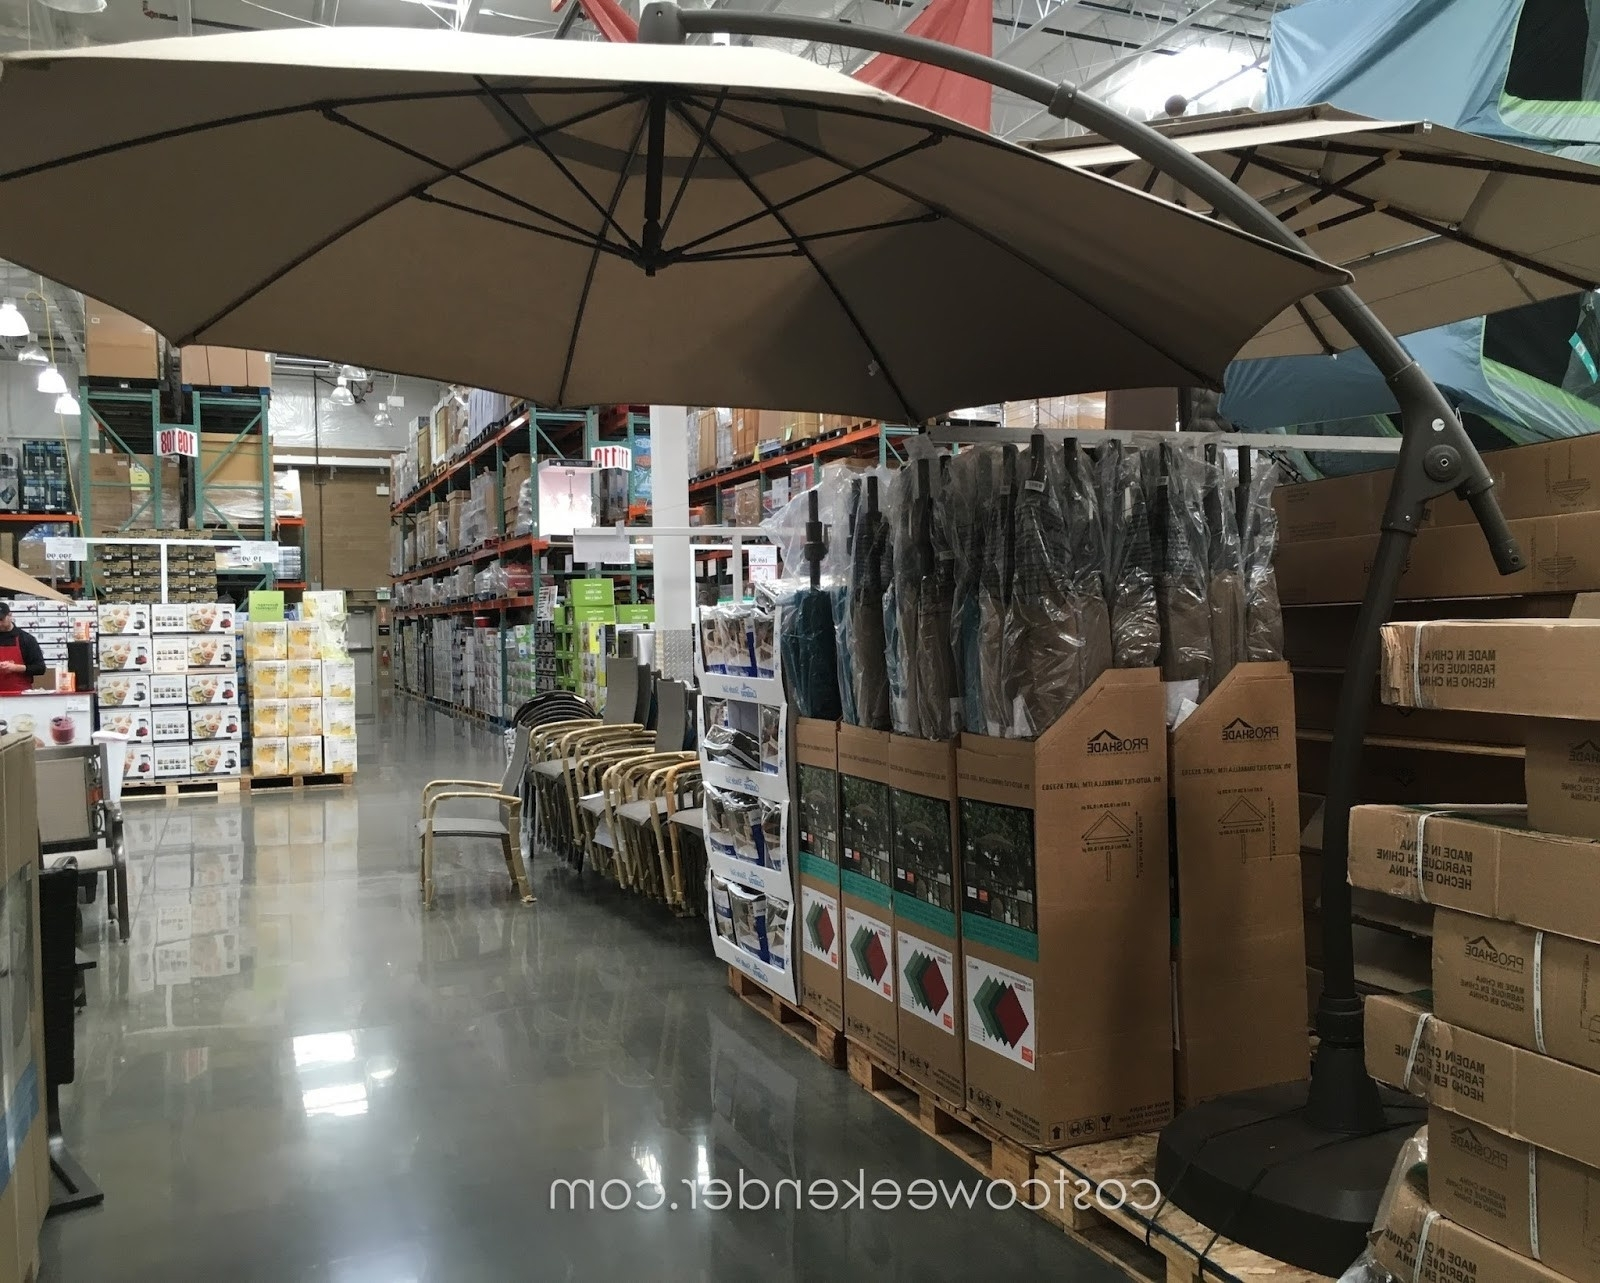 Most Current Sunbrella Patio Umbrellas At Costco Pertaining To 11 Cantilever Patio Umbrella With Base Treasure Garden Cantilever (View 19 of 20)